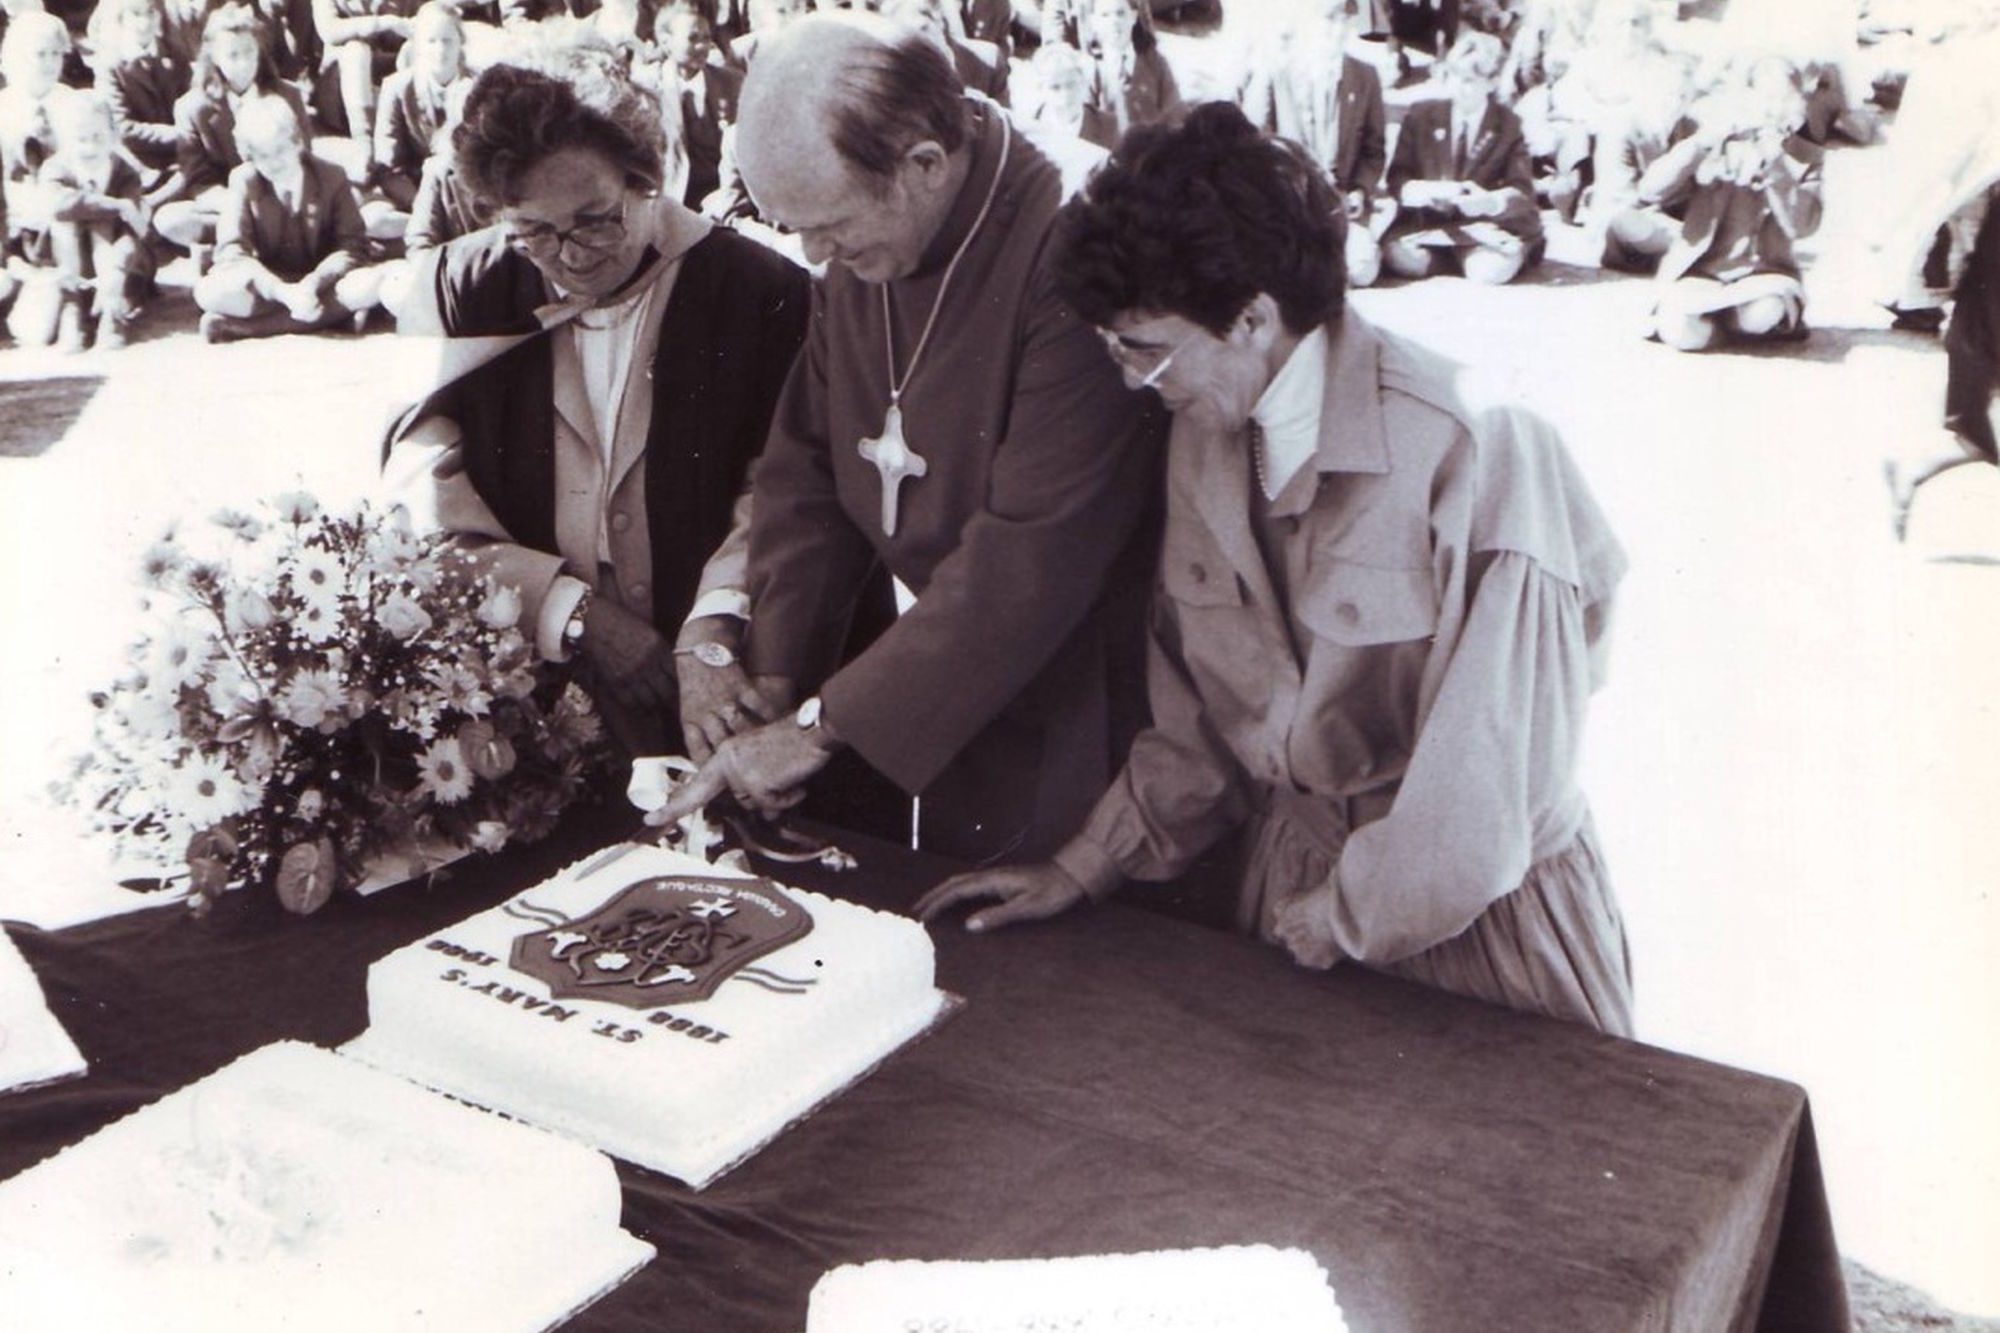 Black and white cutting cake 1988 copy